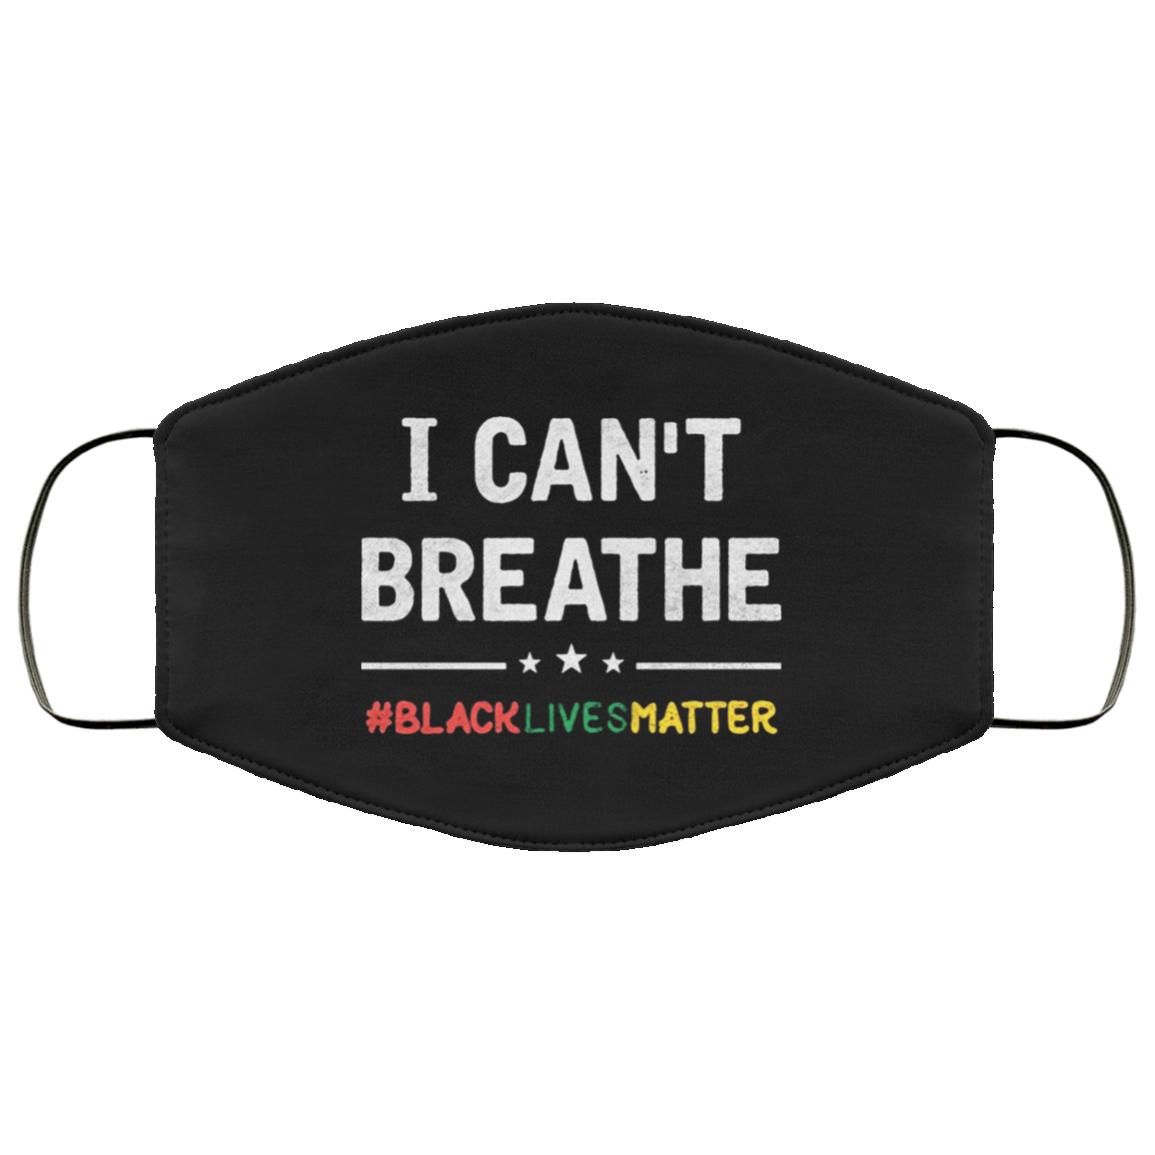 George Floyd I Can't Breathe Face Masks, Black Lives Matter Face Masks Protest